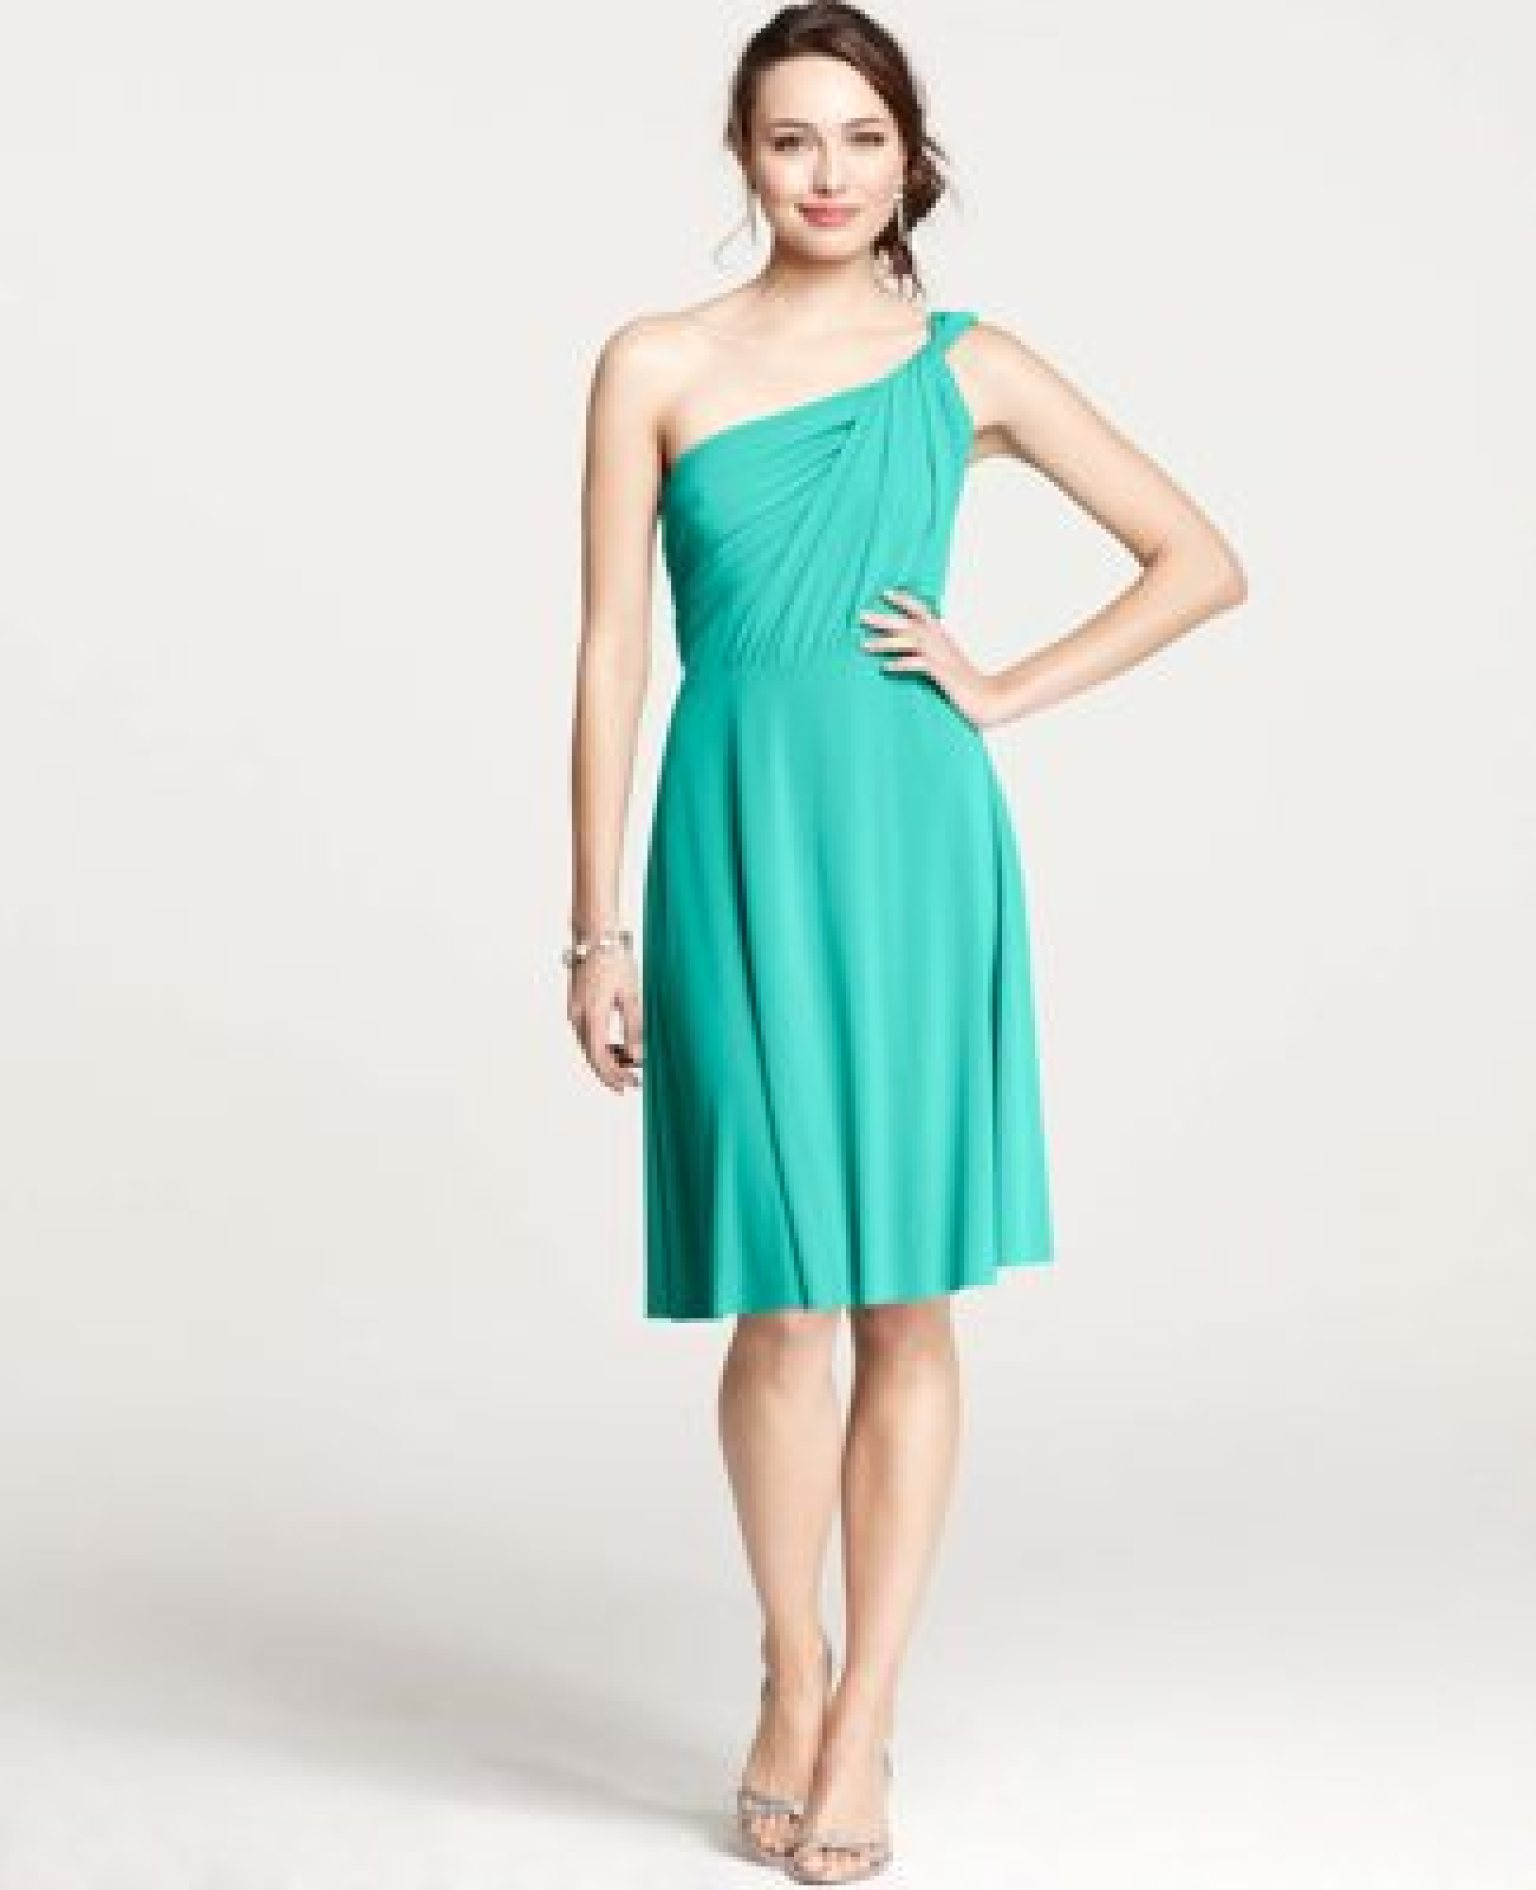 Wedding guest dresses for summer affairs photos huffpost for Dress as a wedding guest